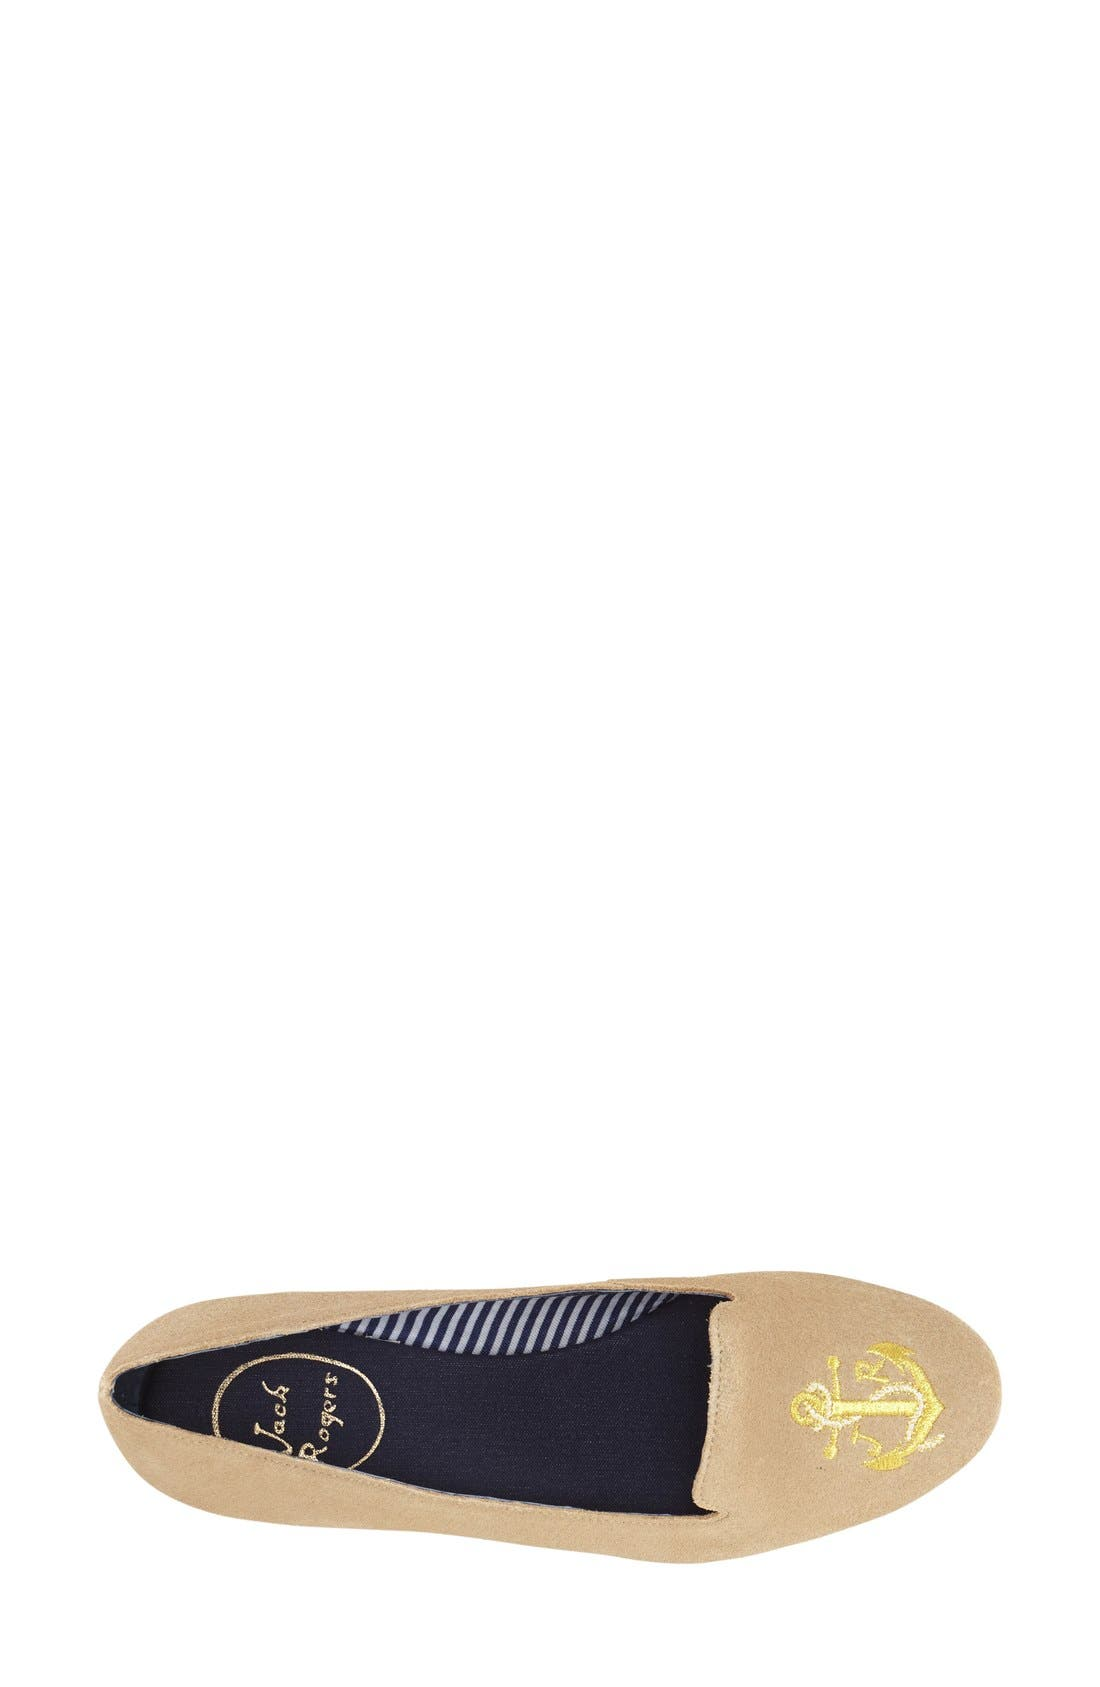 Alternate Image 3  - Jack Rogers 'Reese' Loafer (Women)